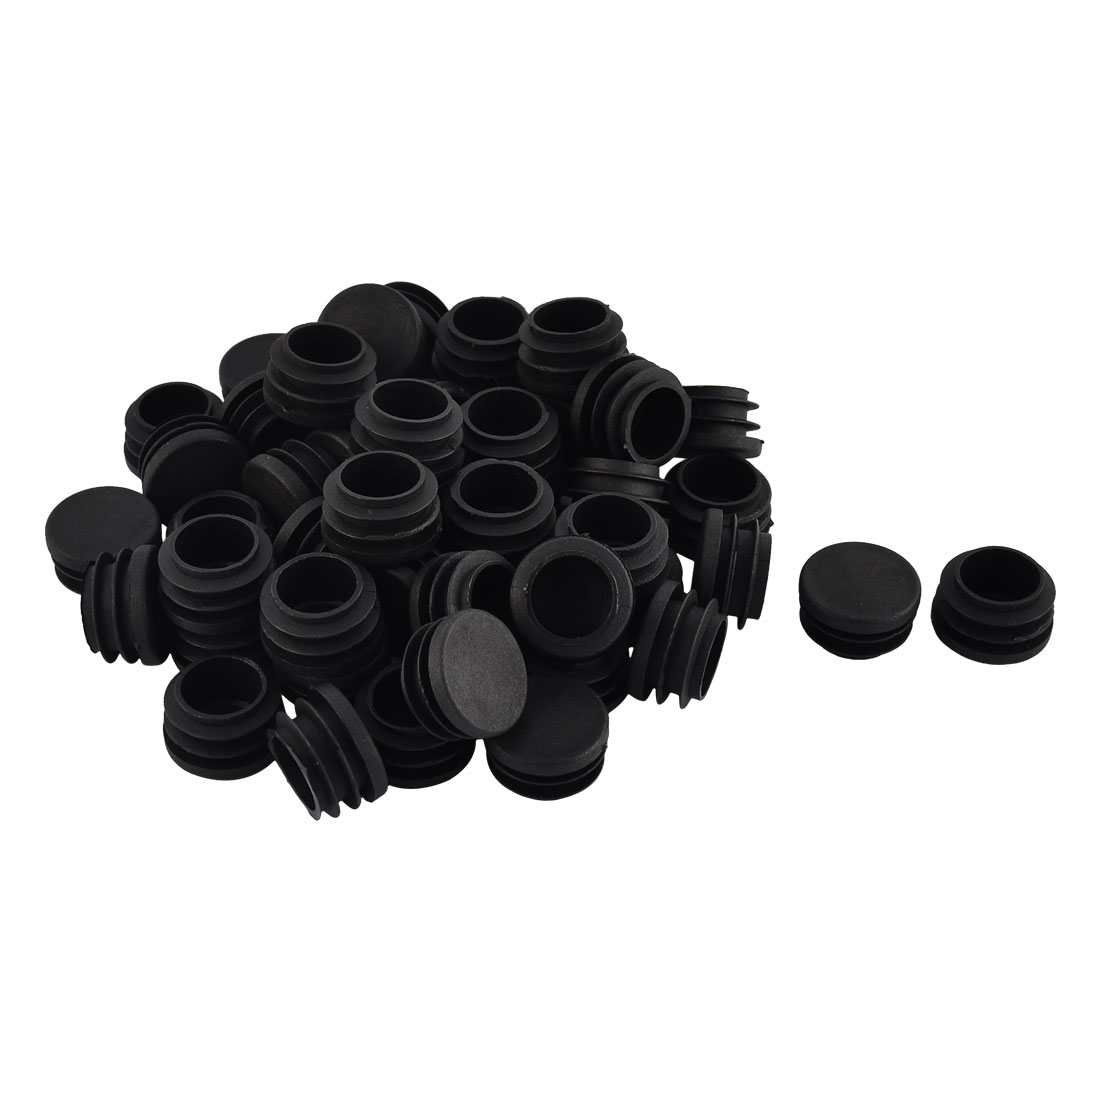 Furniture Table Chair Legs Plastic Flat Base Round Tube Pipe Insert Cap Cover Black 28mm Dia 50pcs